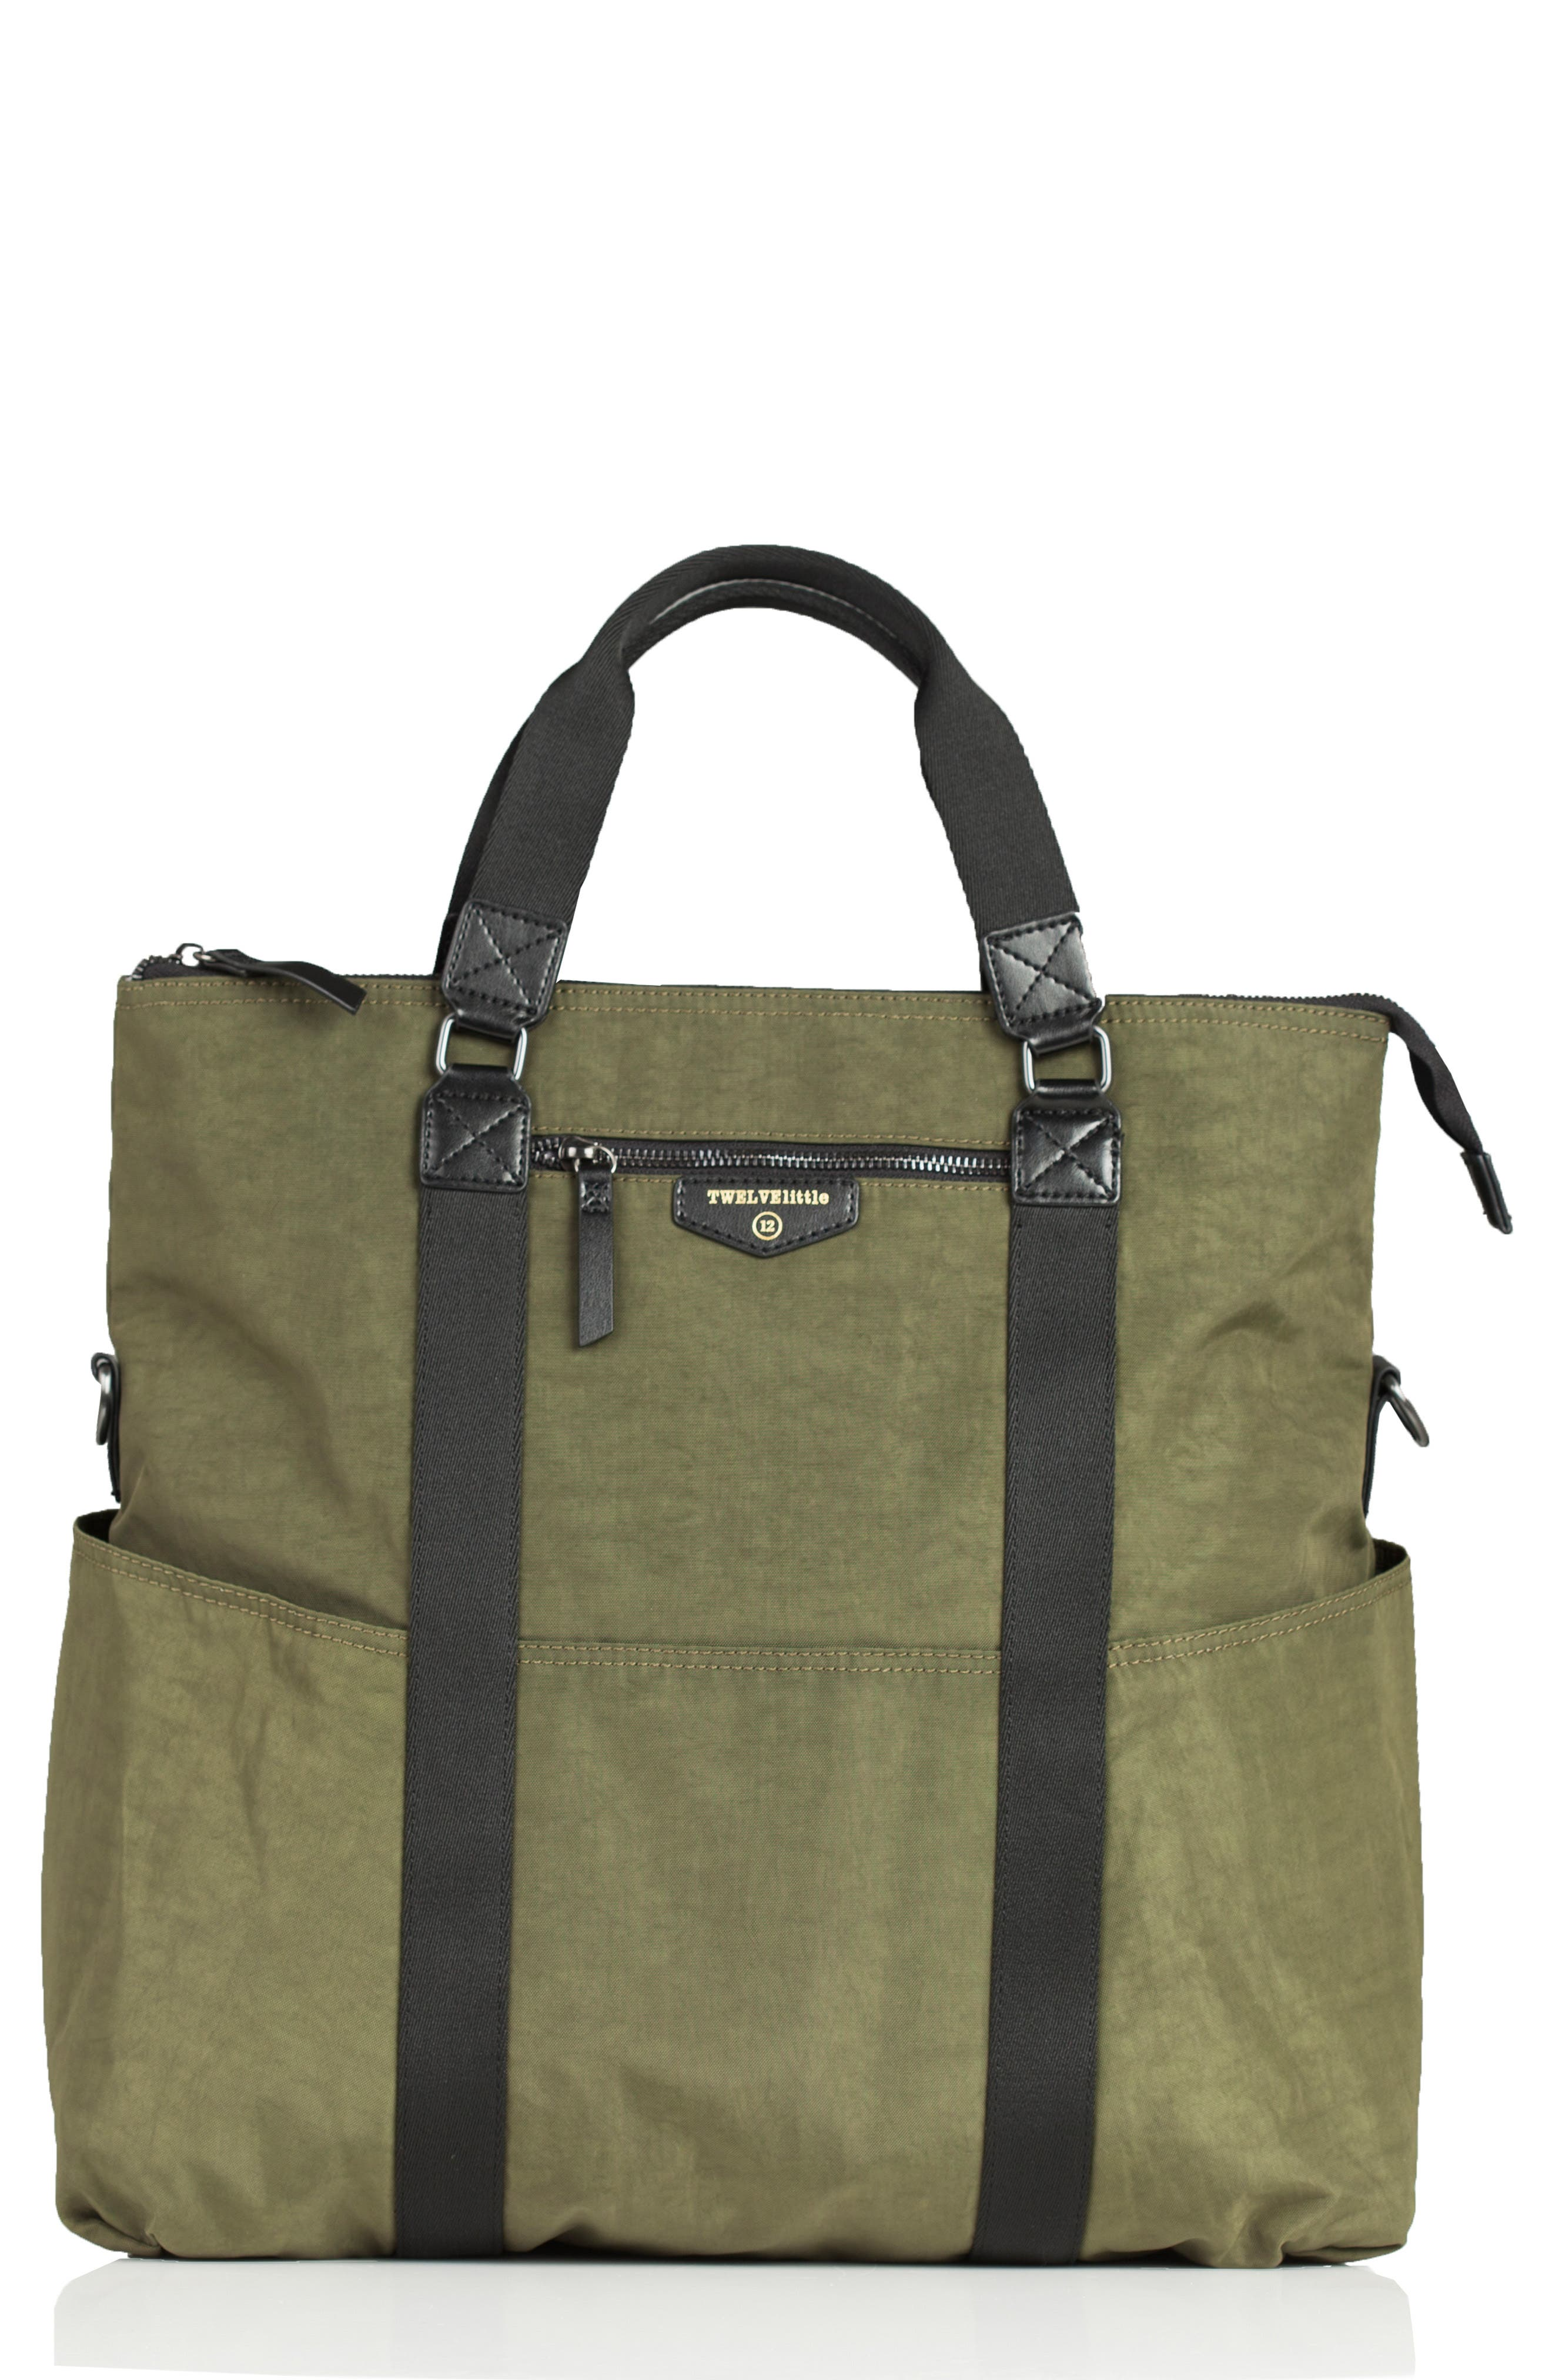 3-in-1 Foldover Diaper Tote,                             Main thumbnail 1, color,                             Olive